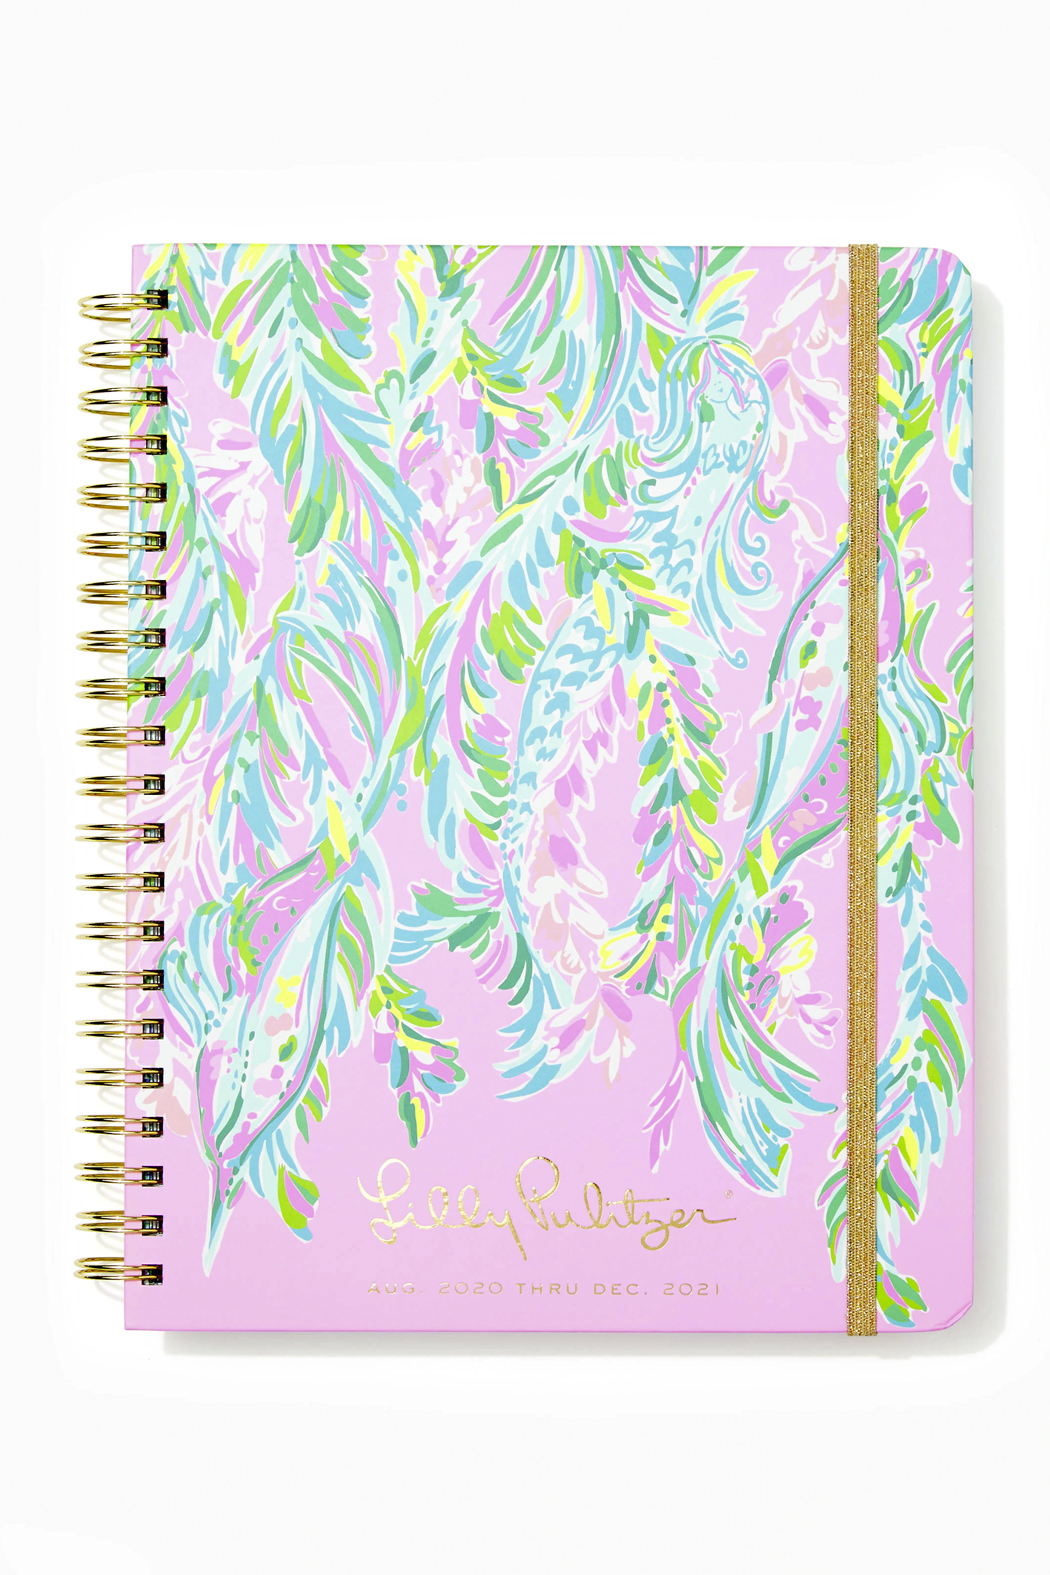 Lilly Pulitzer August 2020-December 2021 Jumbo Agenda - 17 month - Main Image